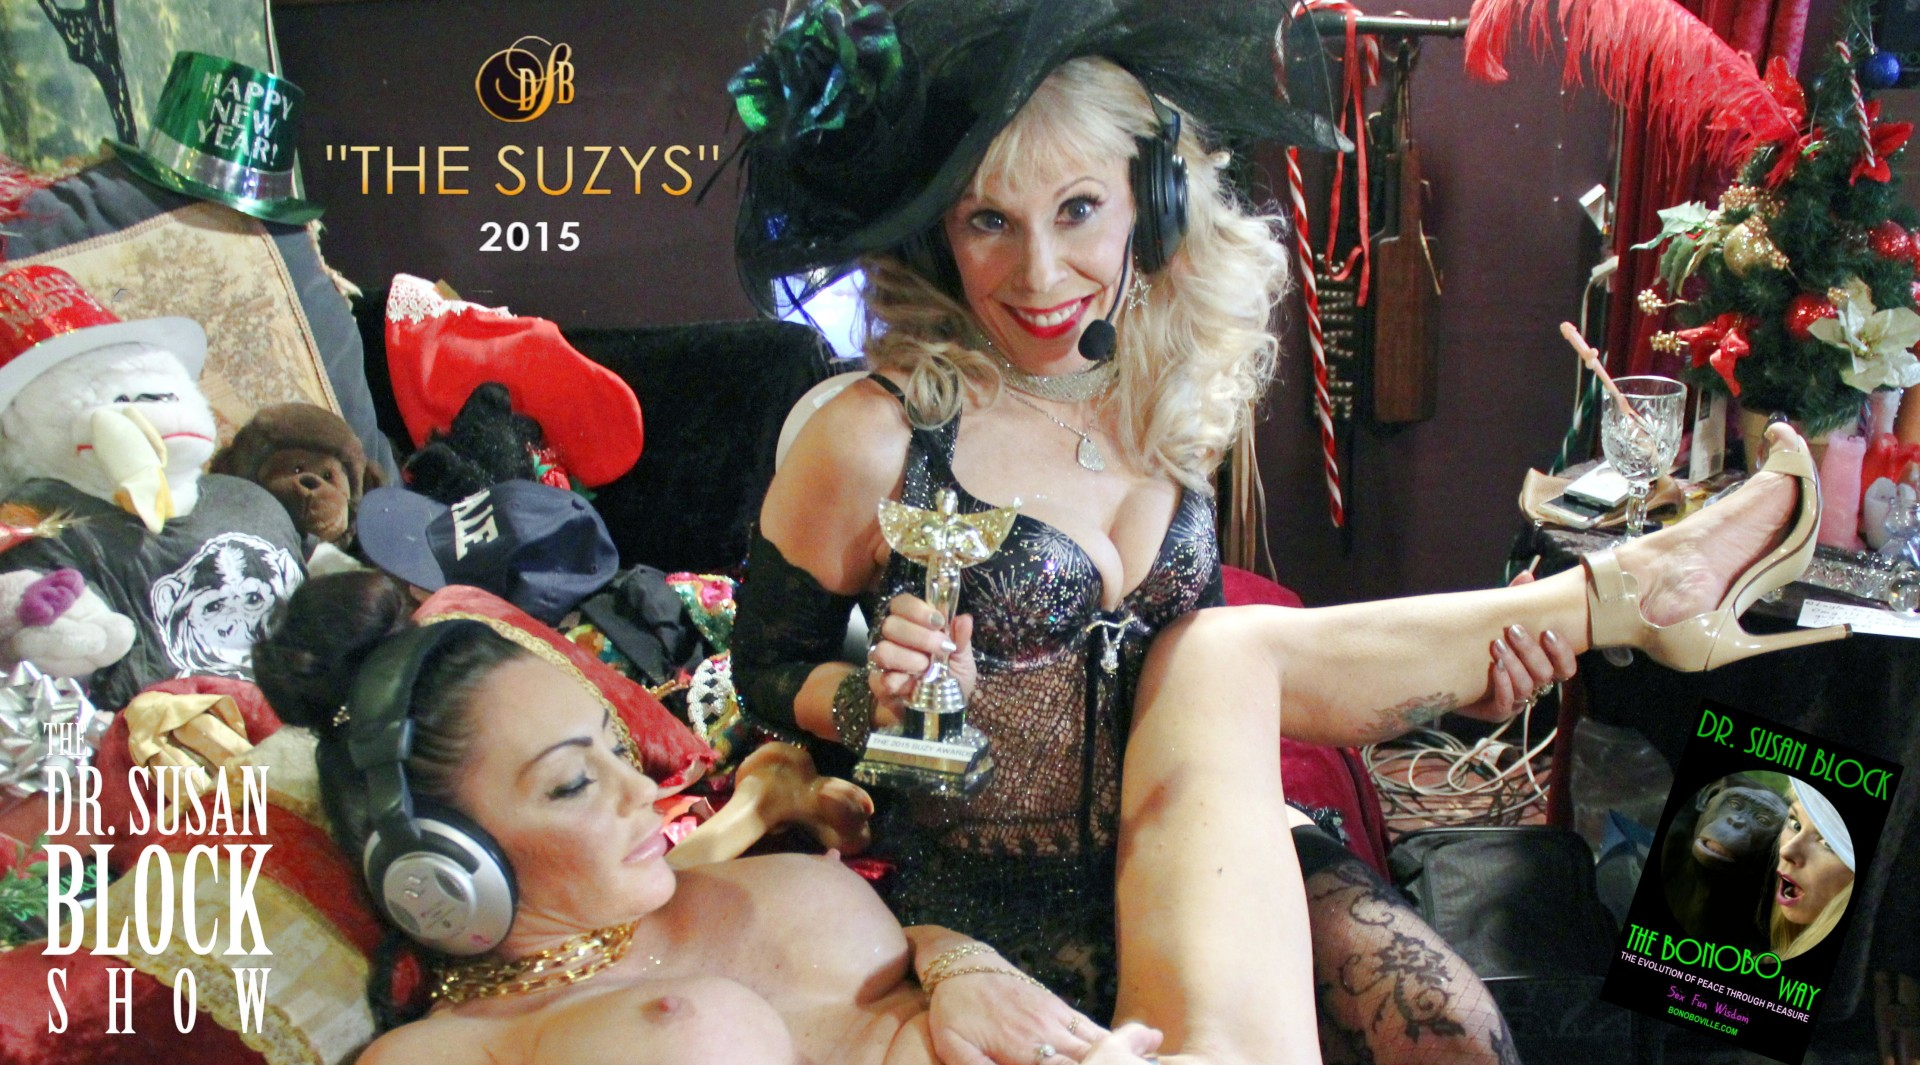 It's The SUZYS! The DrSusanBlock.Tv Awards 2015: And The Winners Are…